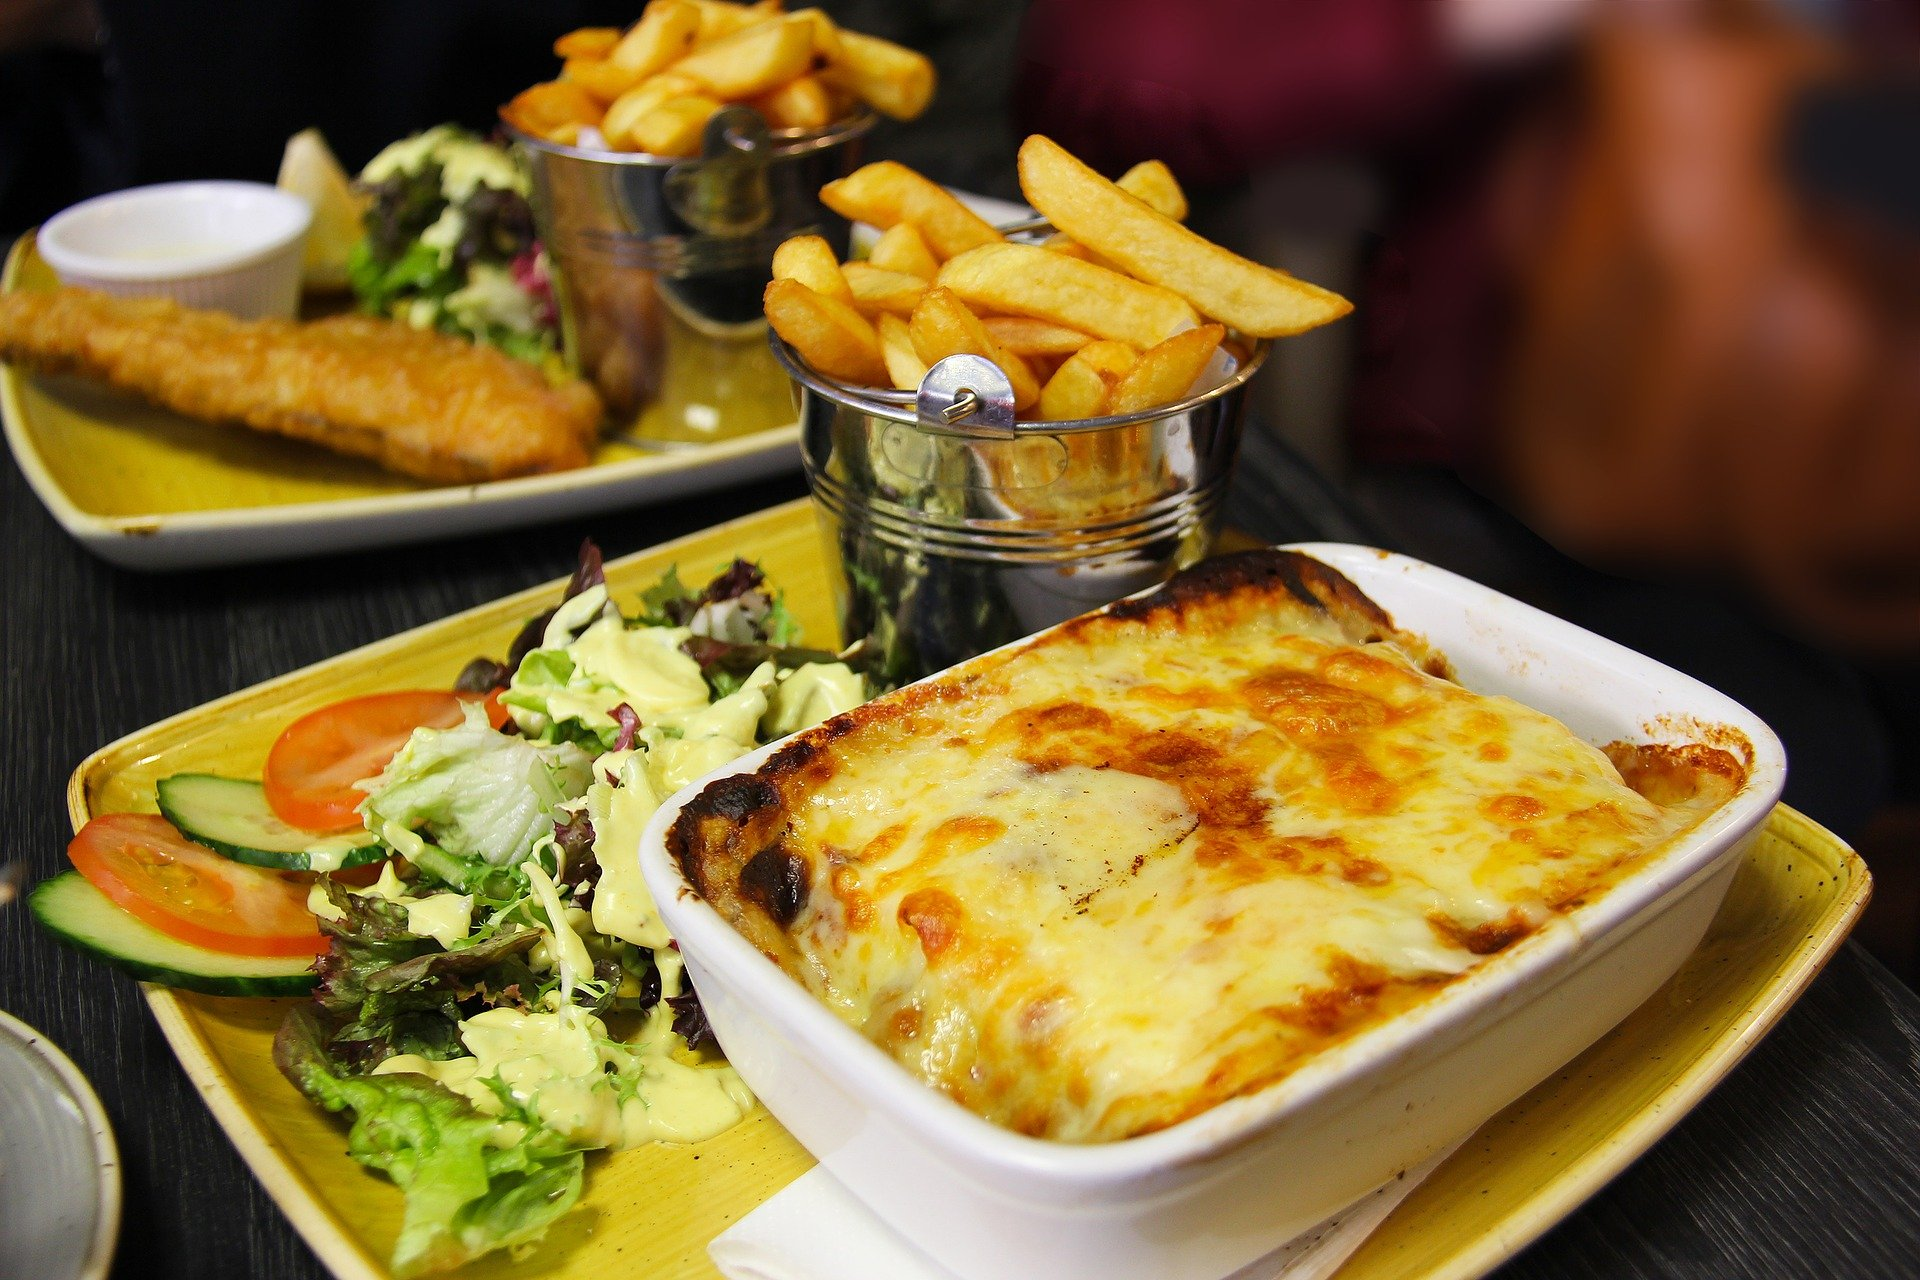 Irish meal of lasagne, chips and fish in the back.